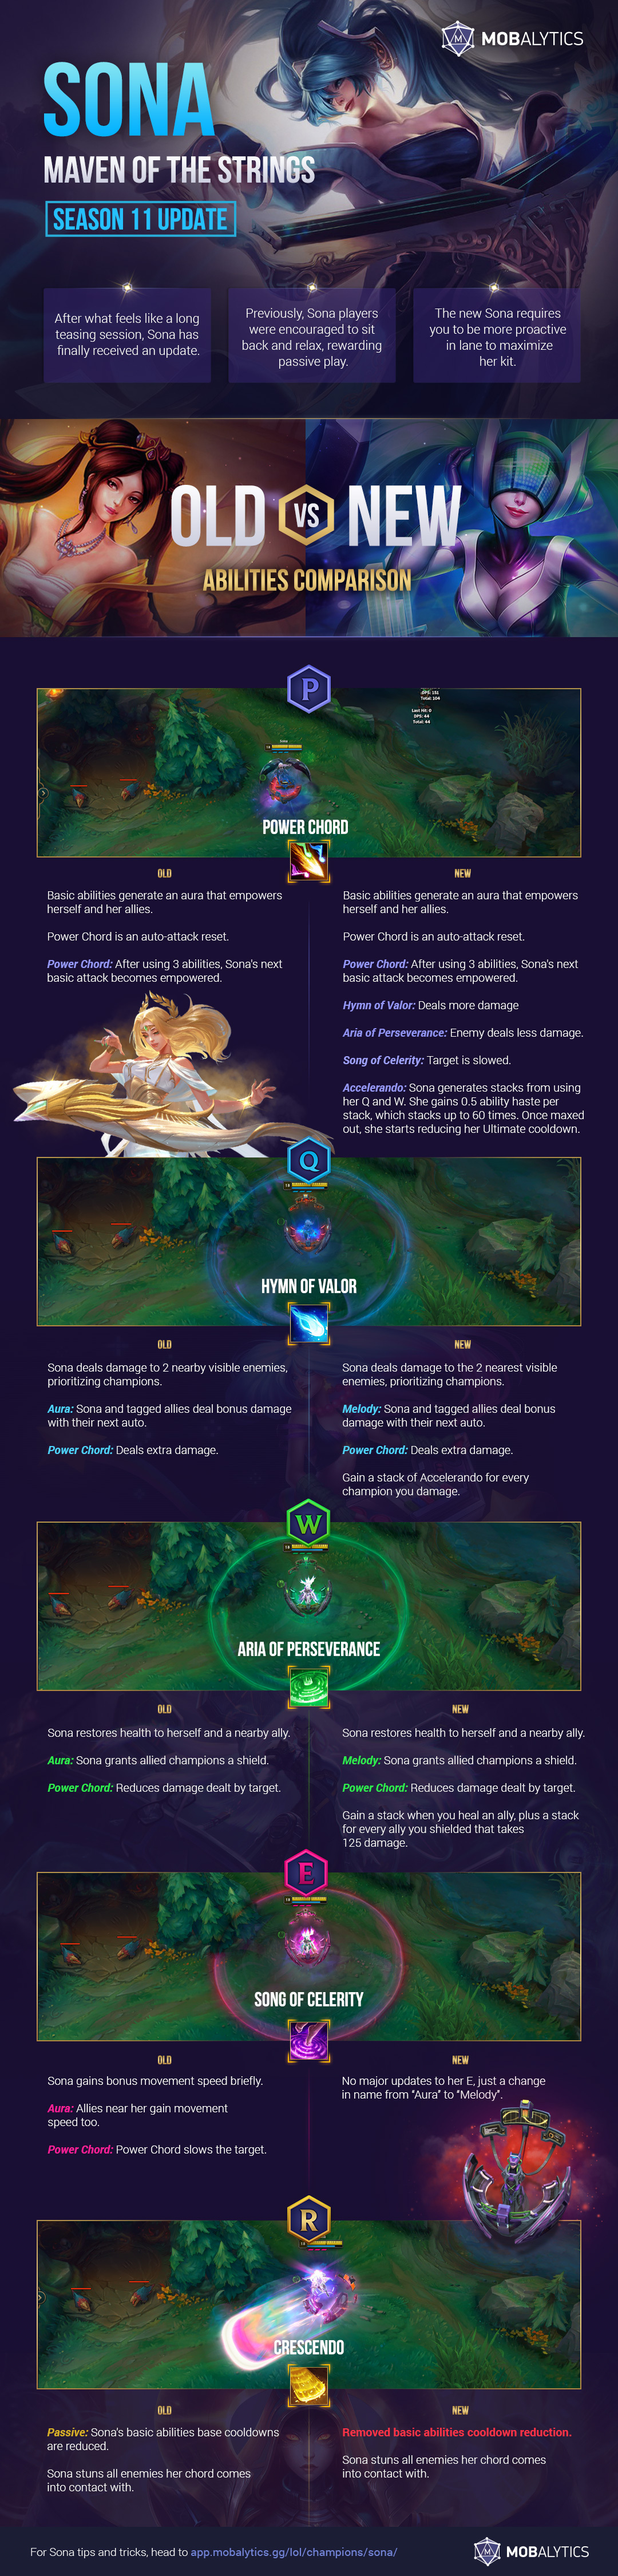 Season 11 Sona Update: Side-by-Side Ability Comparisons – Infographic